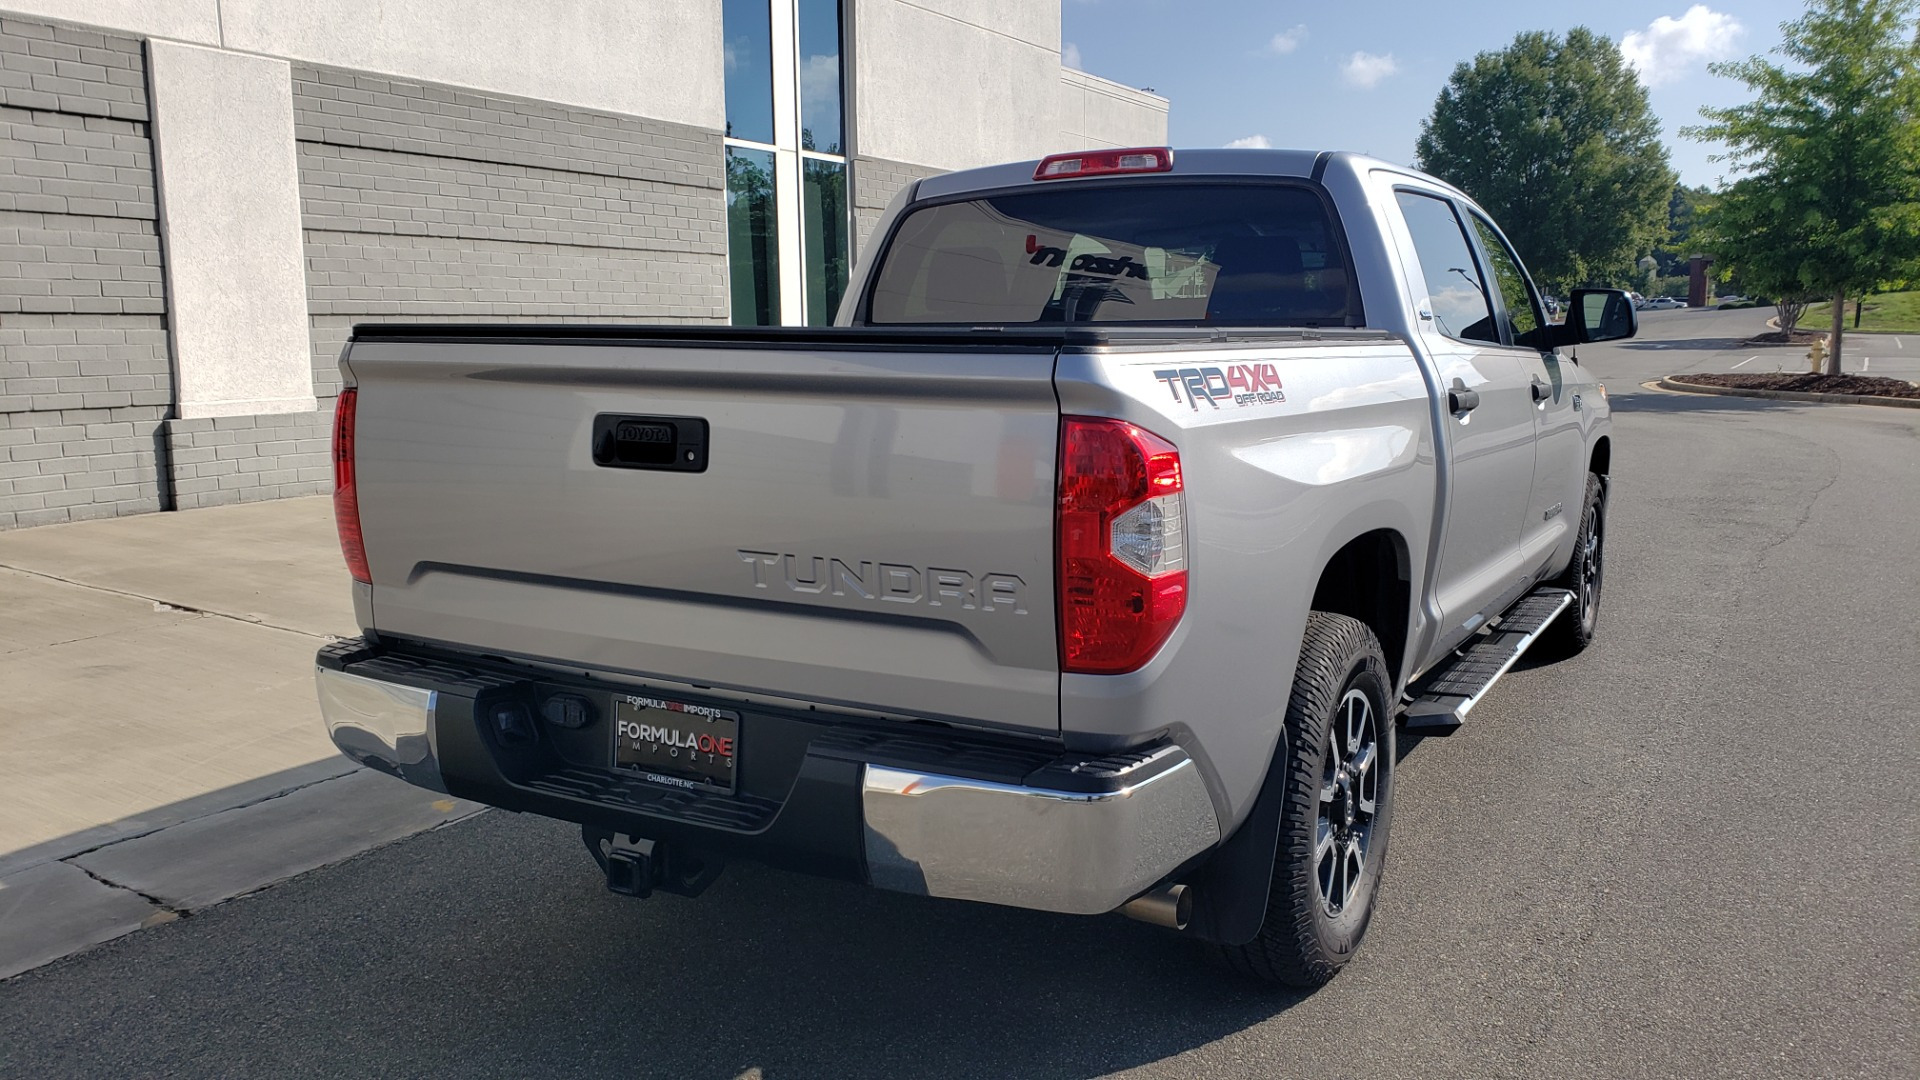 Used 2017 Toyota TUNDRA 4WD SR5 CREWMAX / 5.7L V8 / 6-SPD AUTO / NAV / REARVIEW for sale $44,395 at Formula Imports in Charlotte NC 28227 2